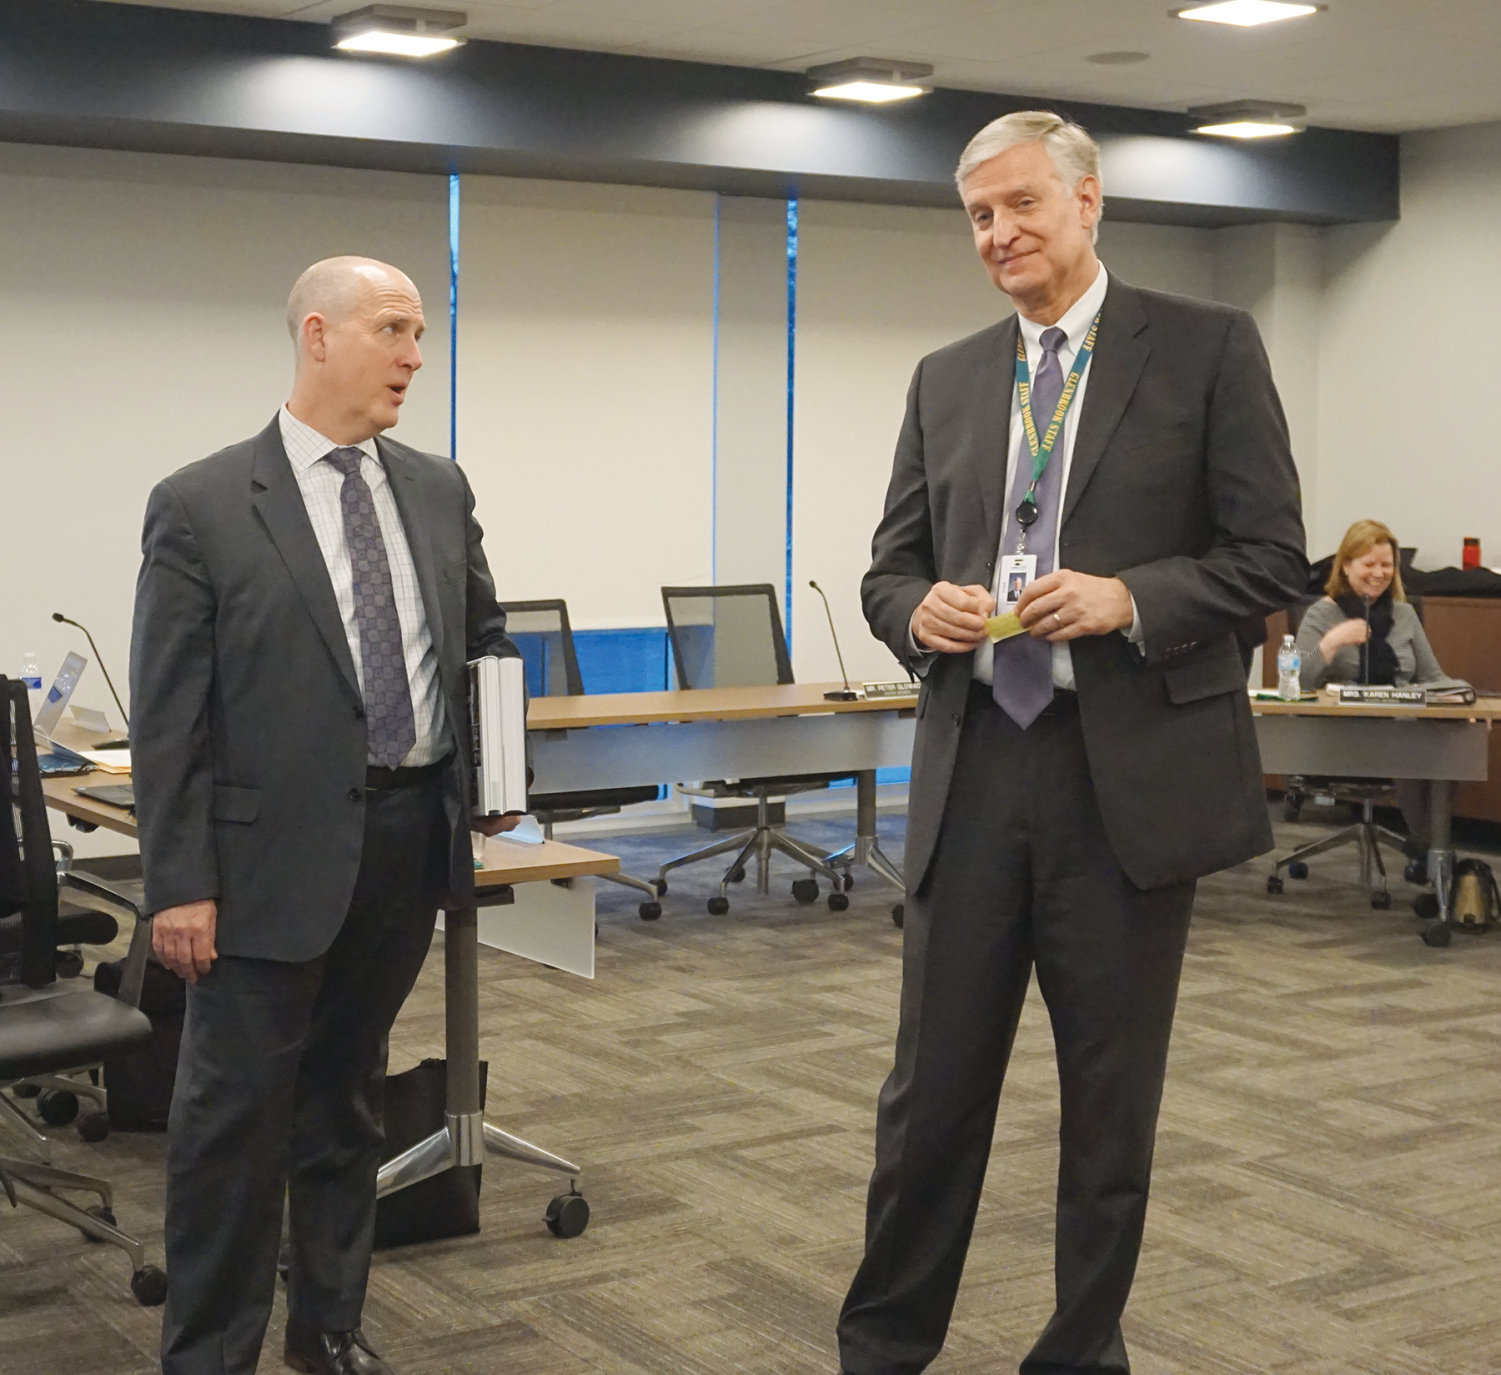 At a District #225 board meeting, newly hired superintendent Charles Johns (left) and current superintendent Mike Riggle exchange greetings. Johns is scheduled to assume this position on July 1. Photo by Andreea Sabau